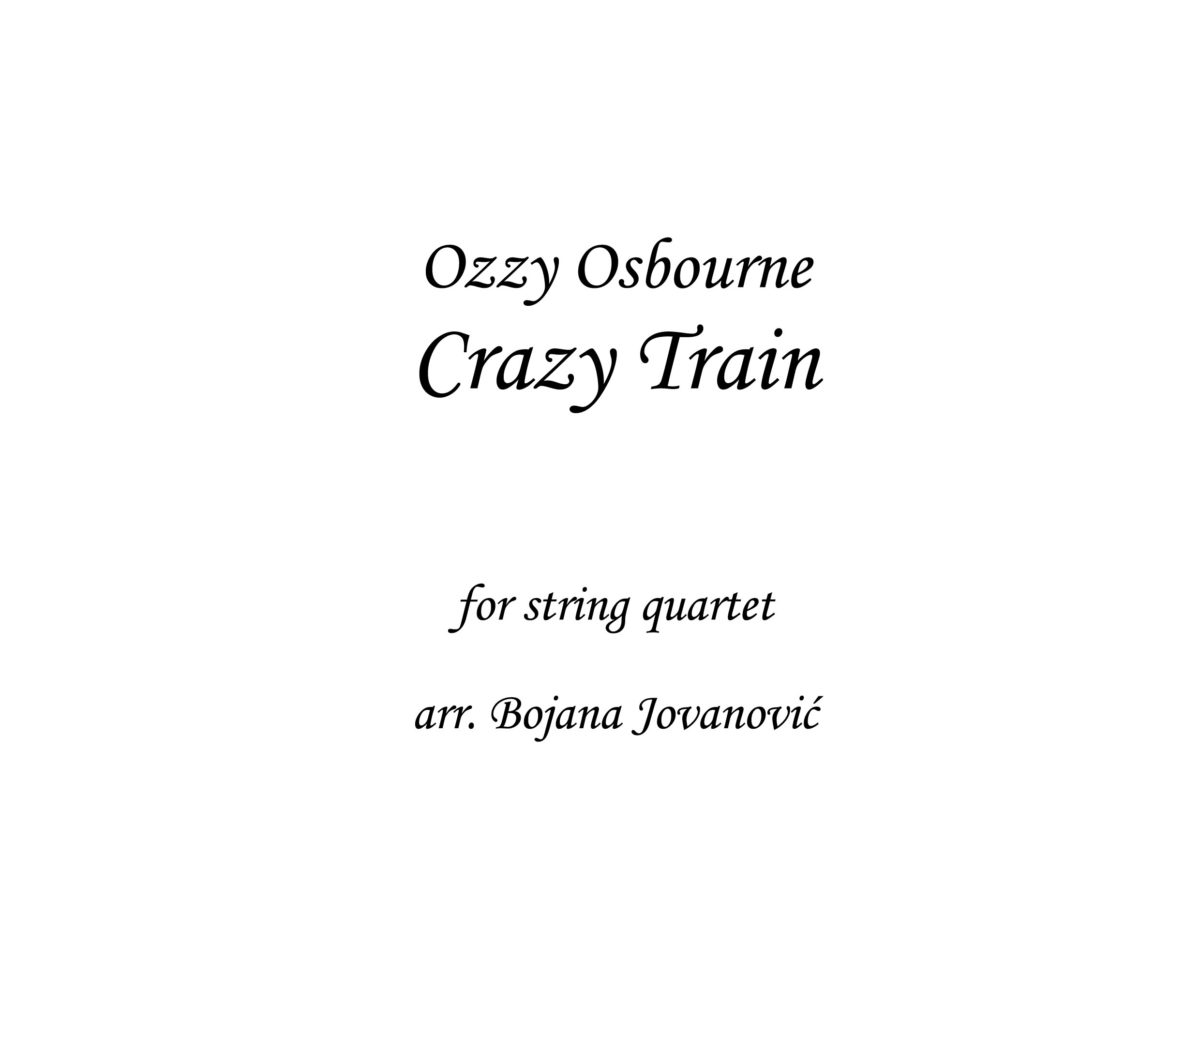 Crazy Train Ozzy Osbourne Sheet music